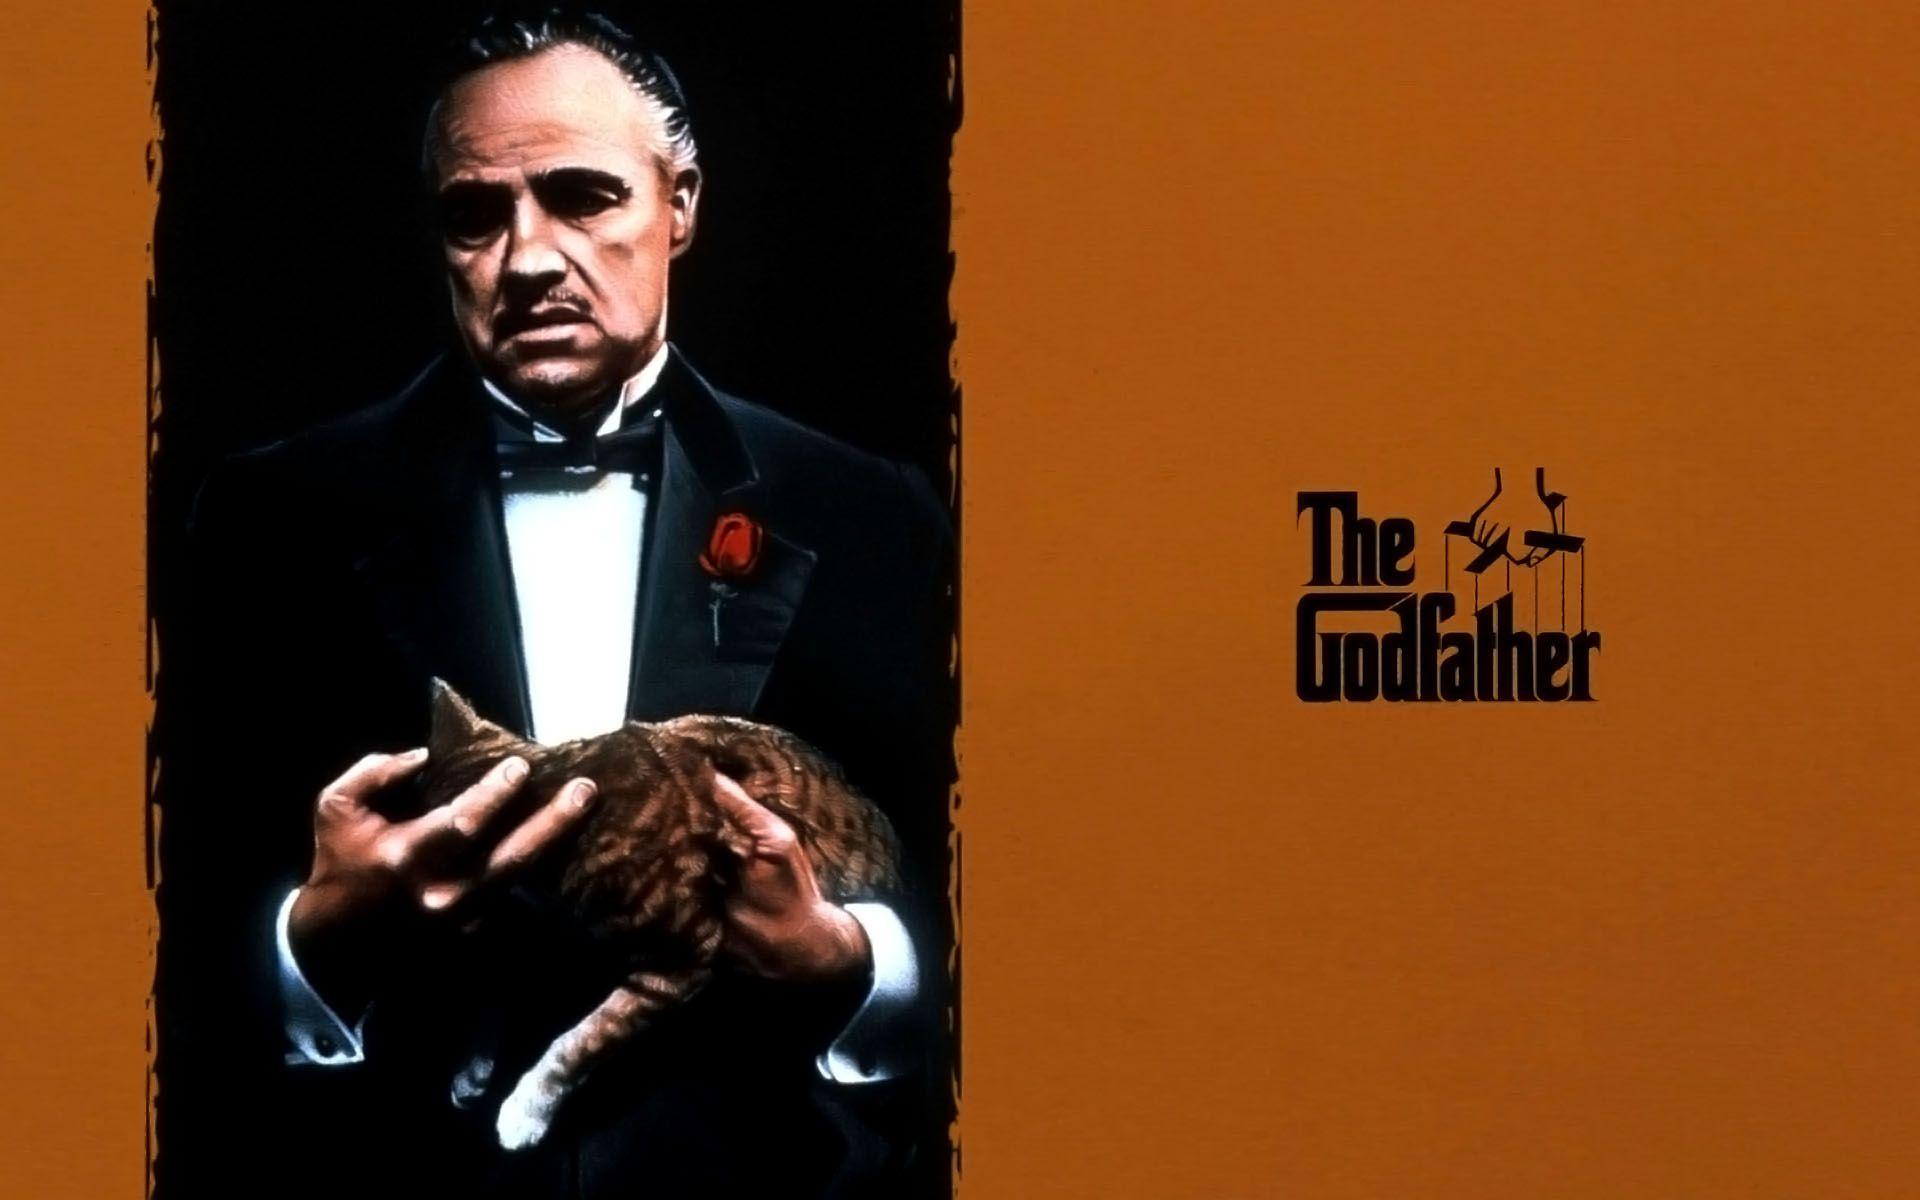 The Godfather NEW Images Wallpapers For iPad - MoviesWalls